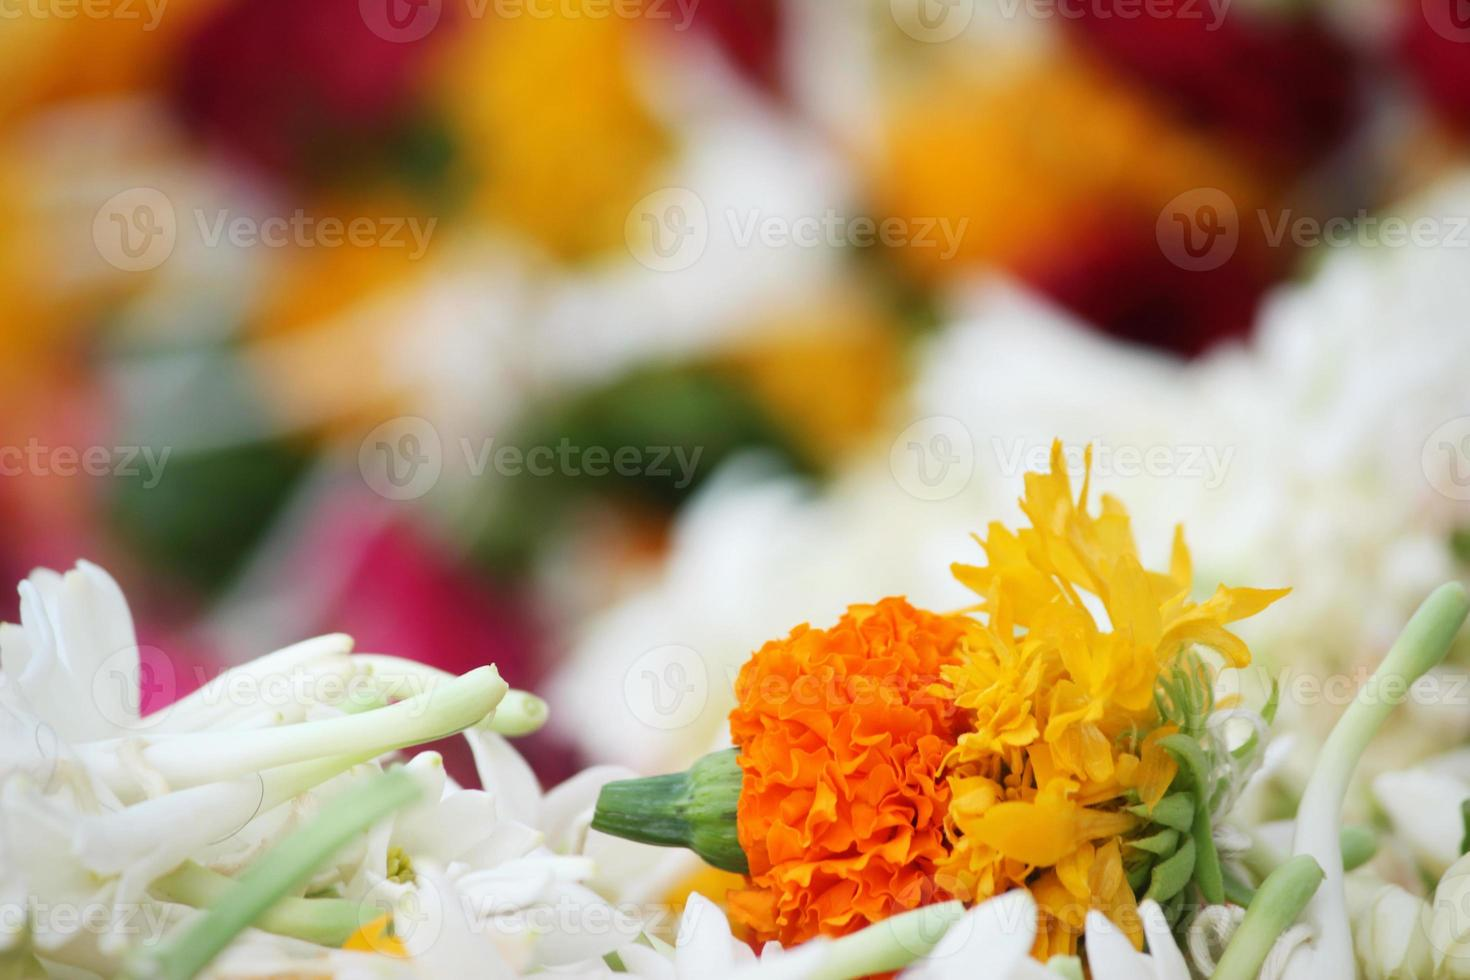 Marigold with White Flowers photo